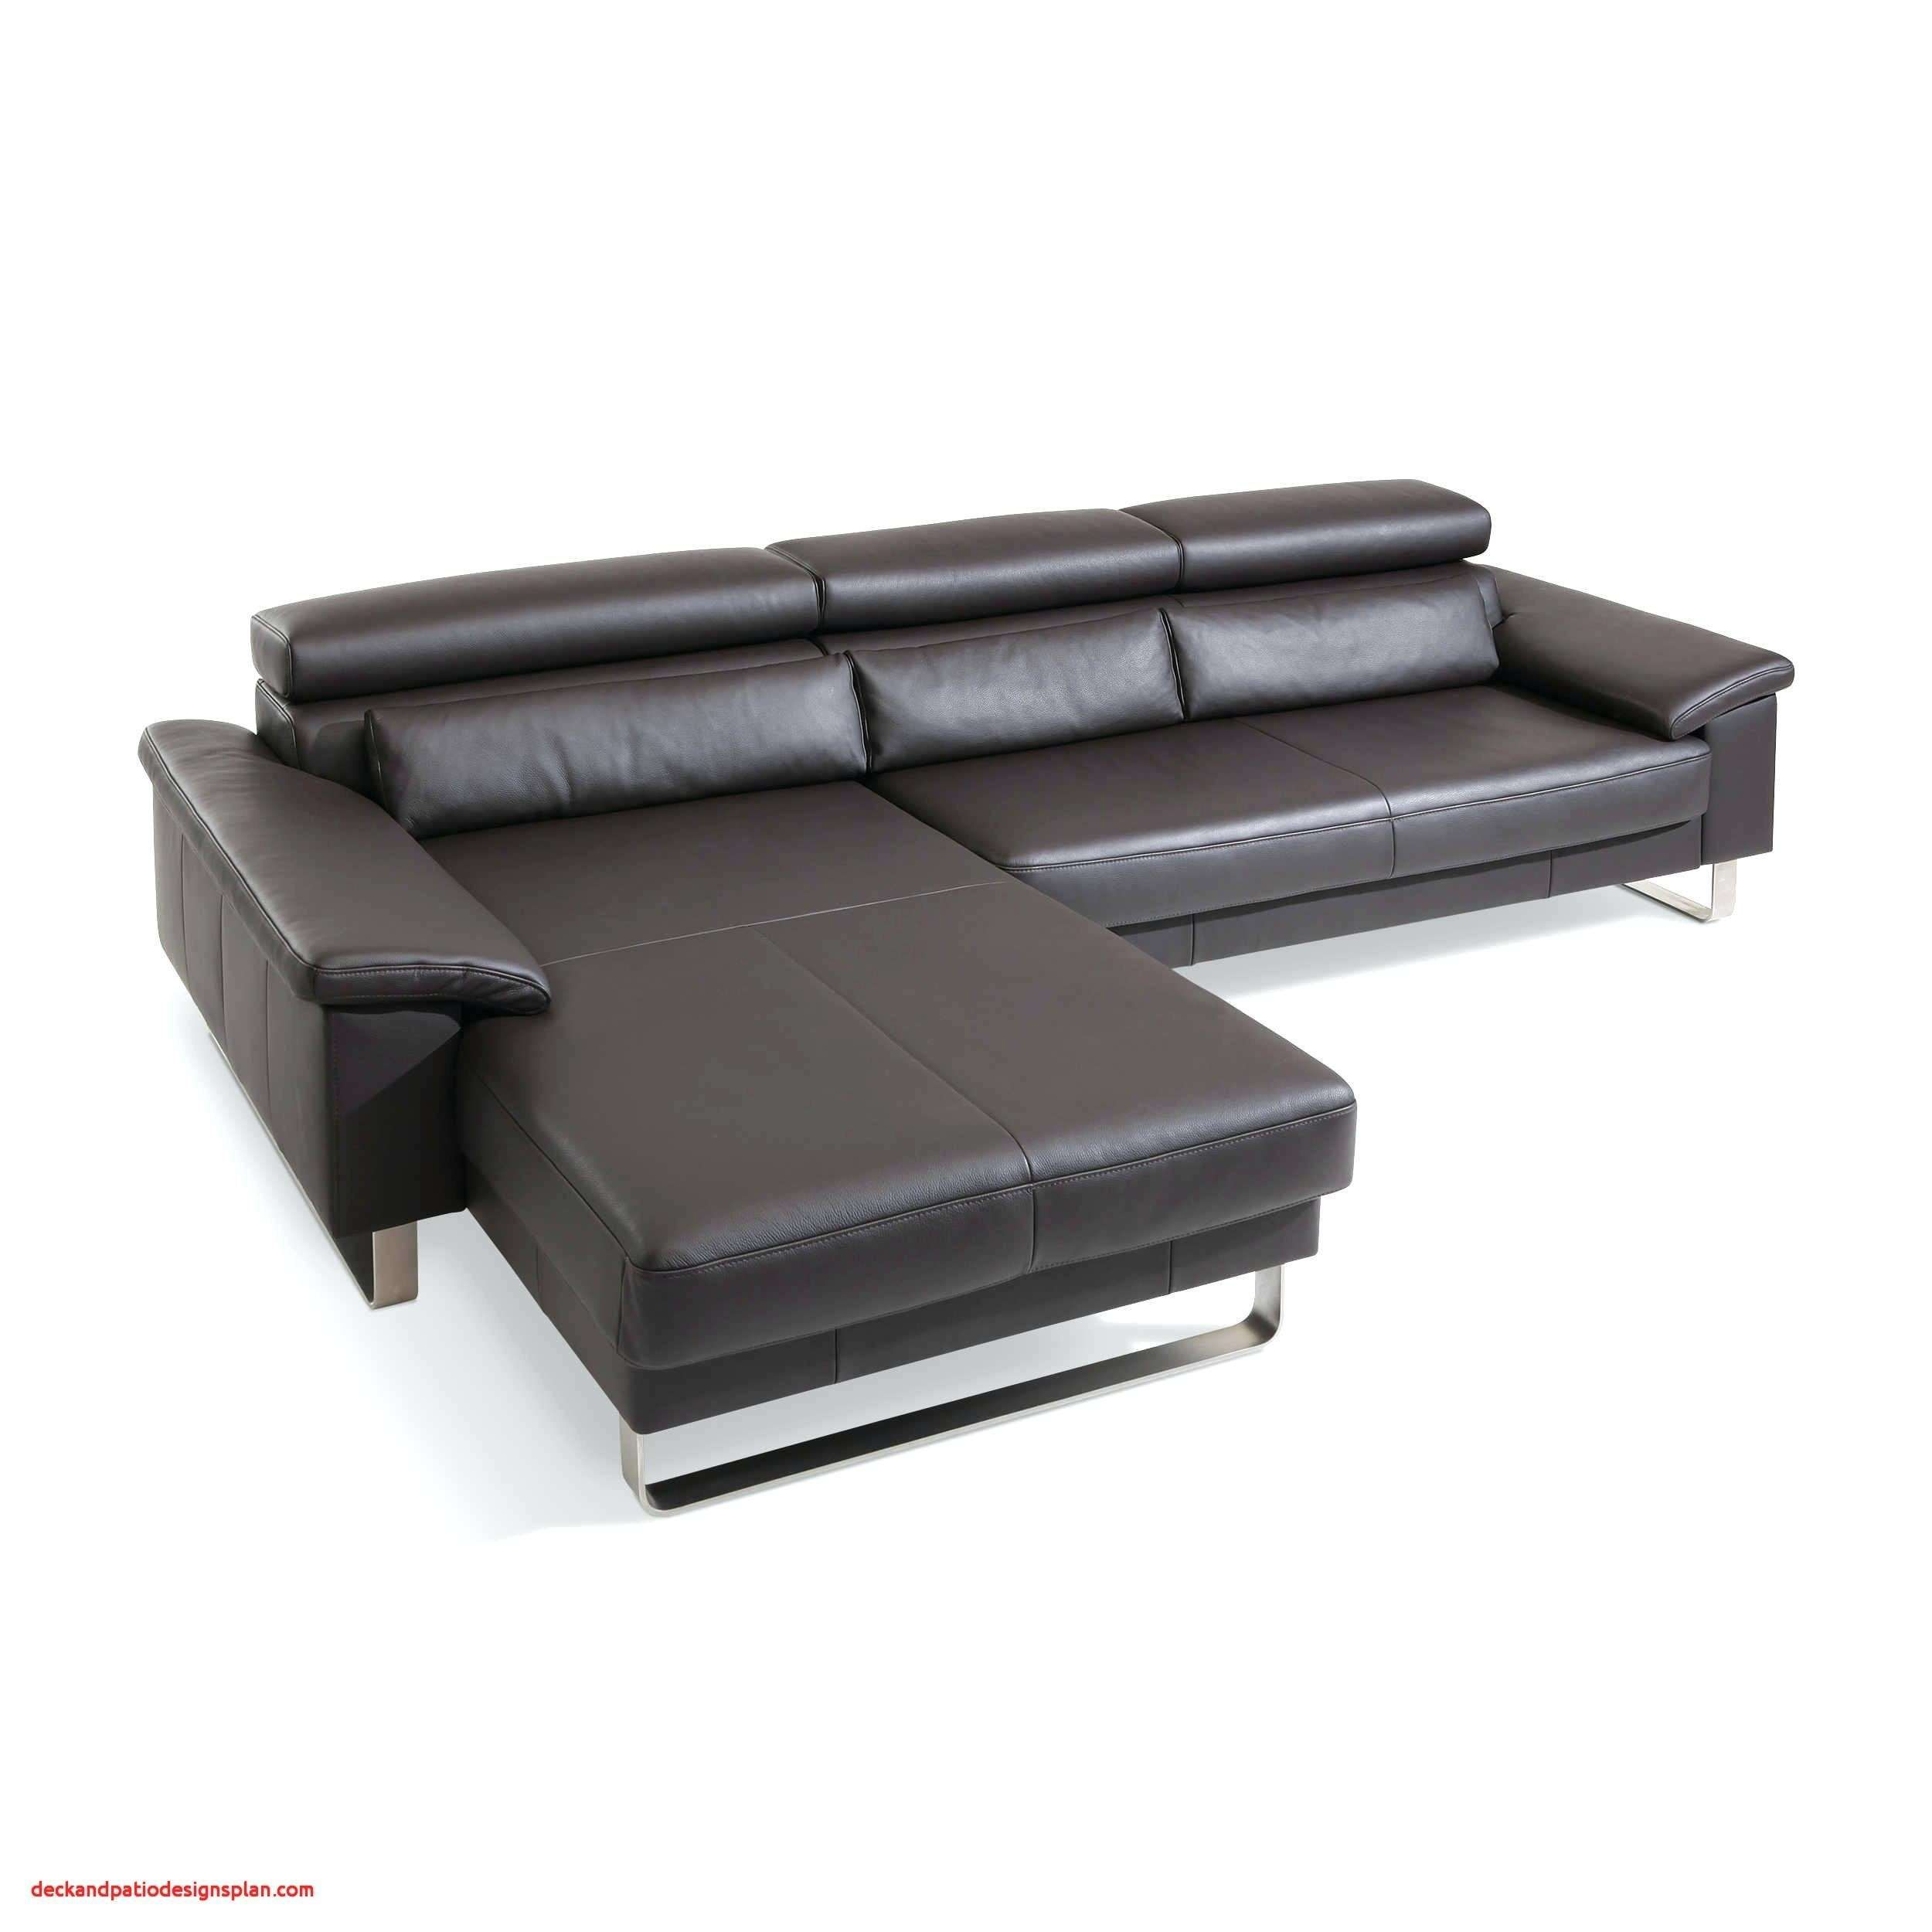 Big Sofa Lila Couch Lila Beste Wohnzimmer Couch Xxl Luxus Sofa